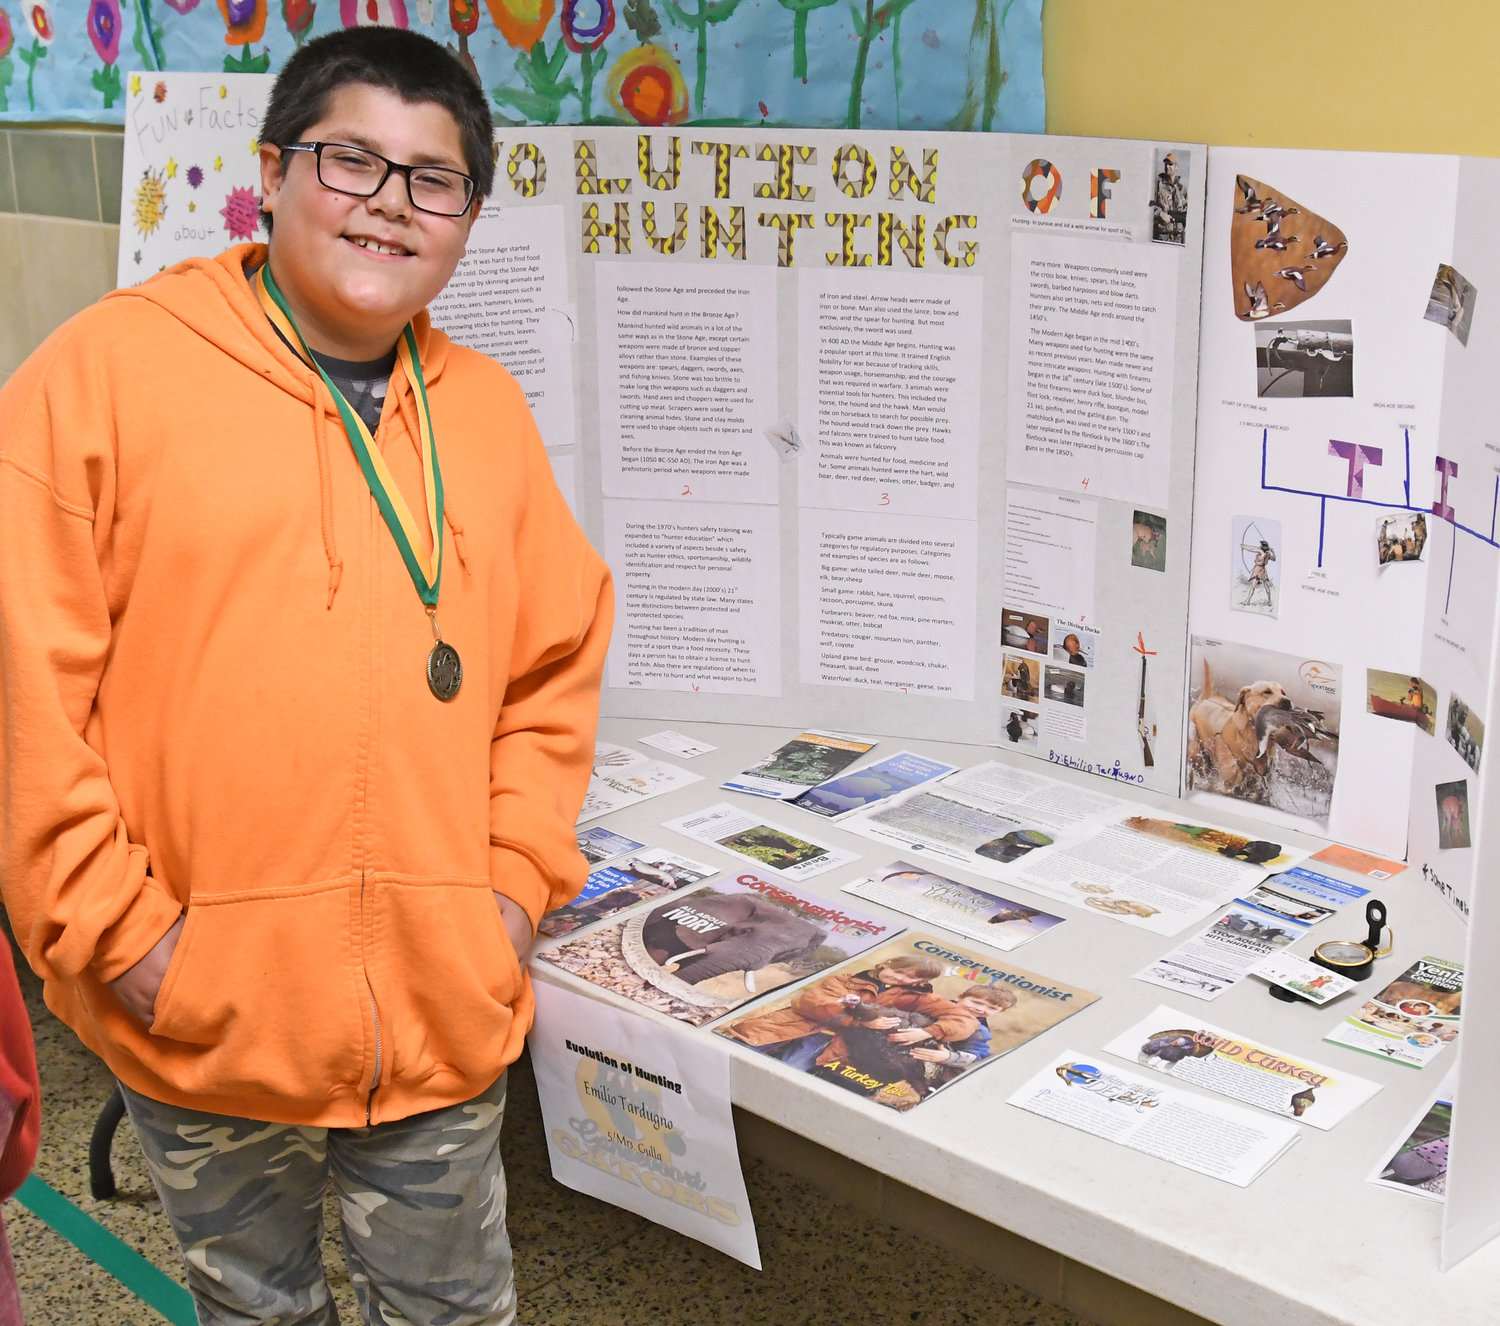 SHARING SCIENCE — Emilio Tardugno shows his display, complete with a variety of pamphlets, brochures and magazines, on the Evolution of Hunting at Gansevoort Elementary School's Science Fair on Thursday. Tardugno is a fifth-grade student.